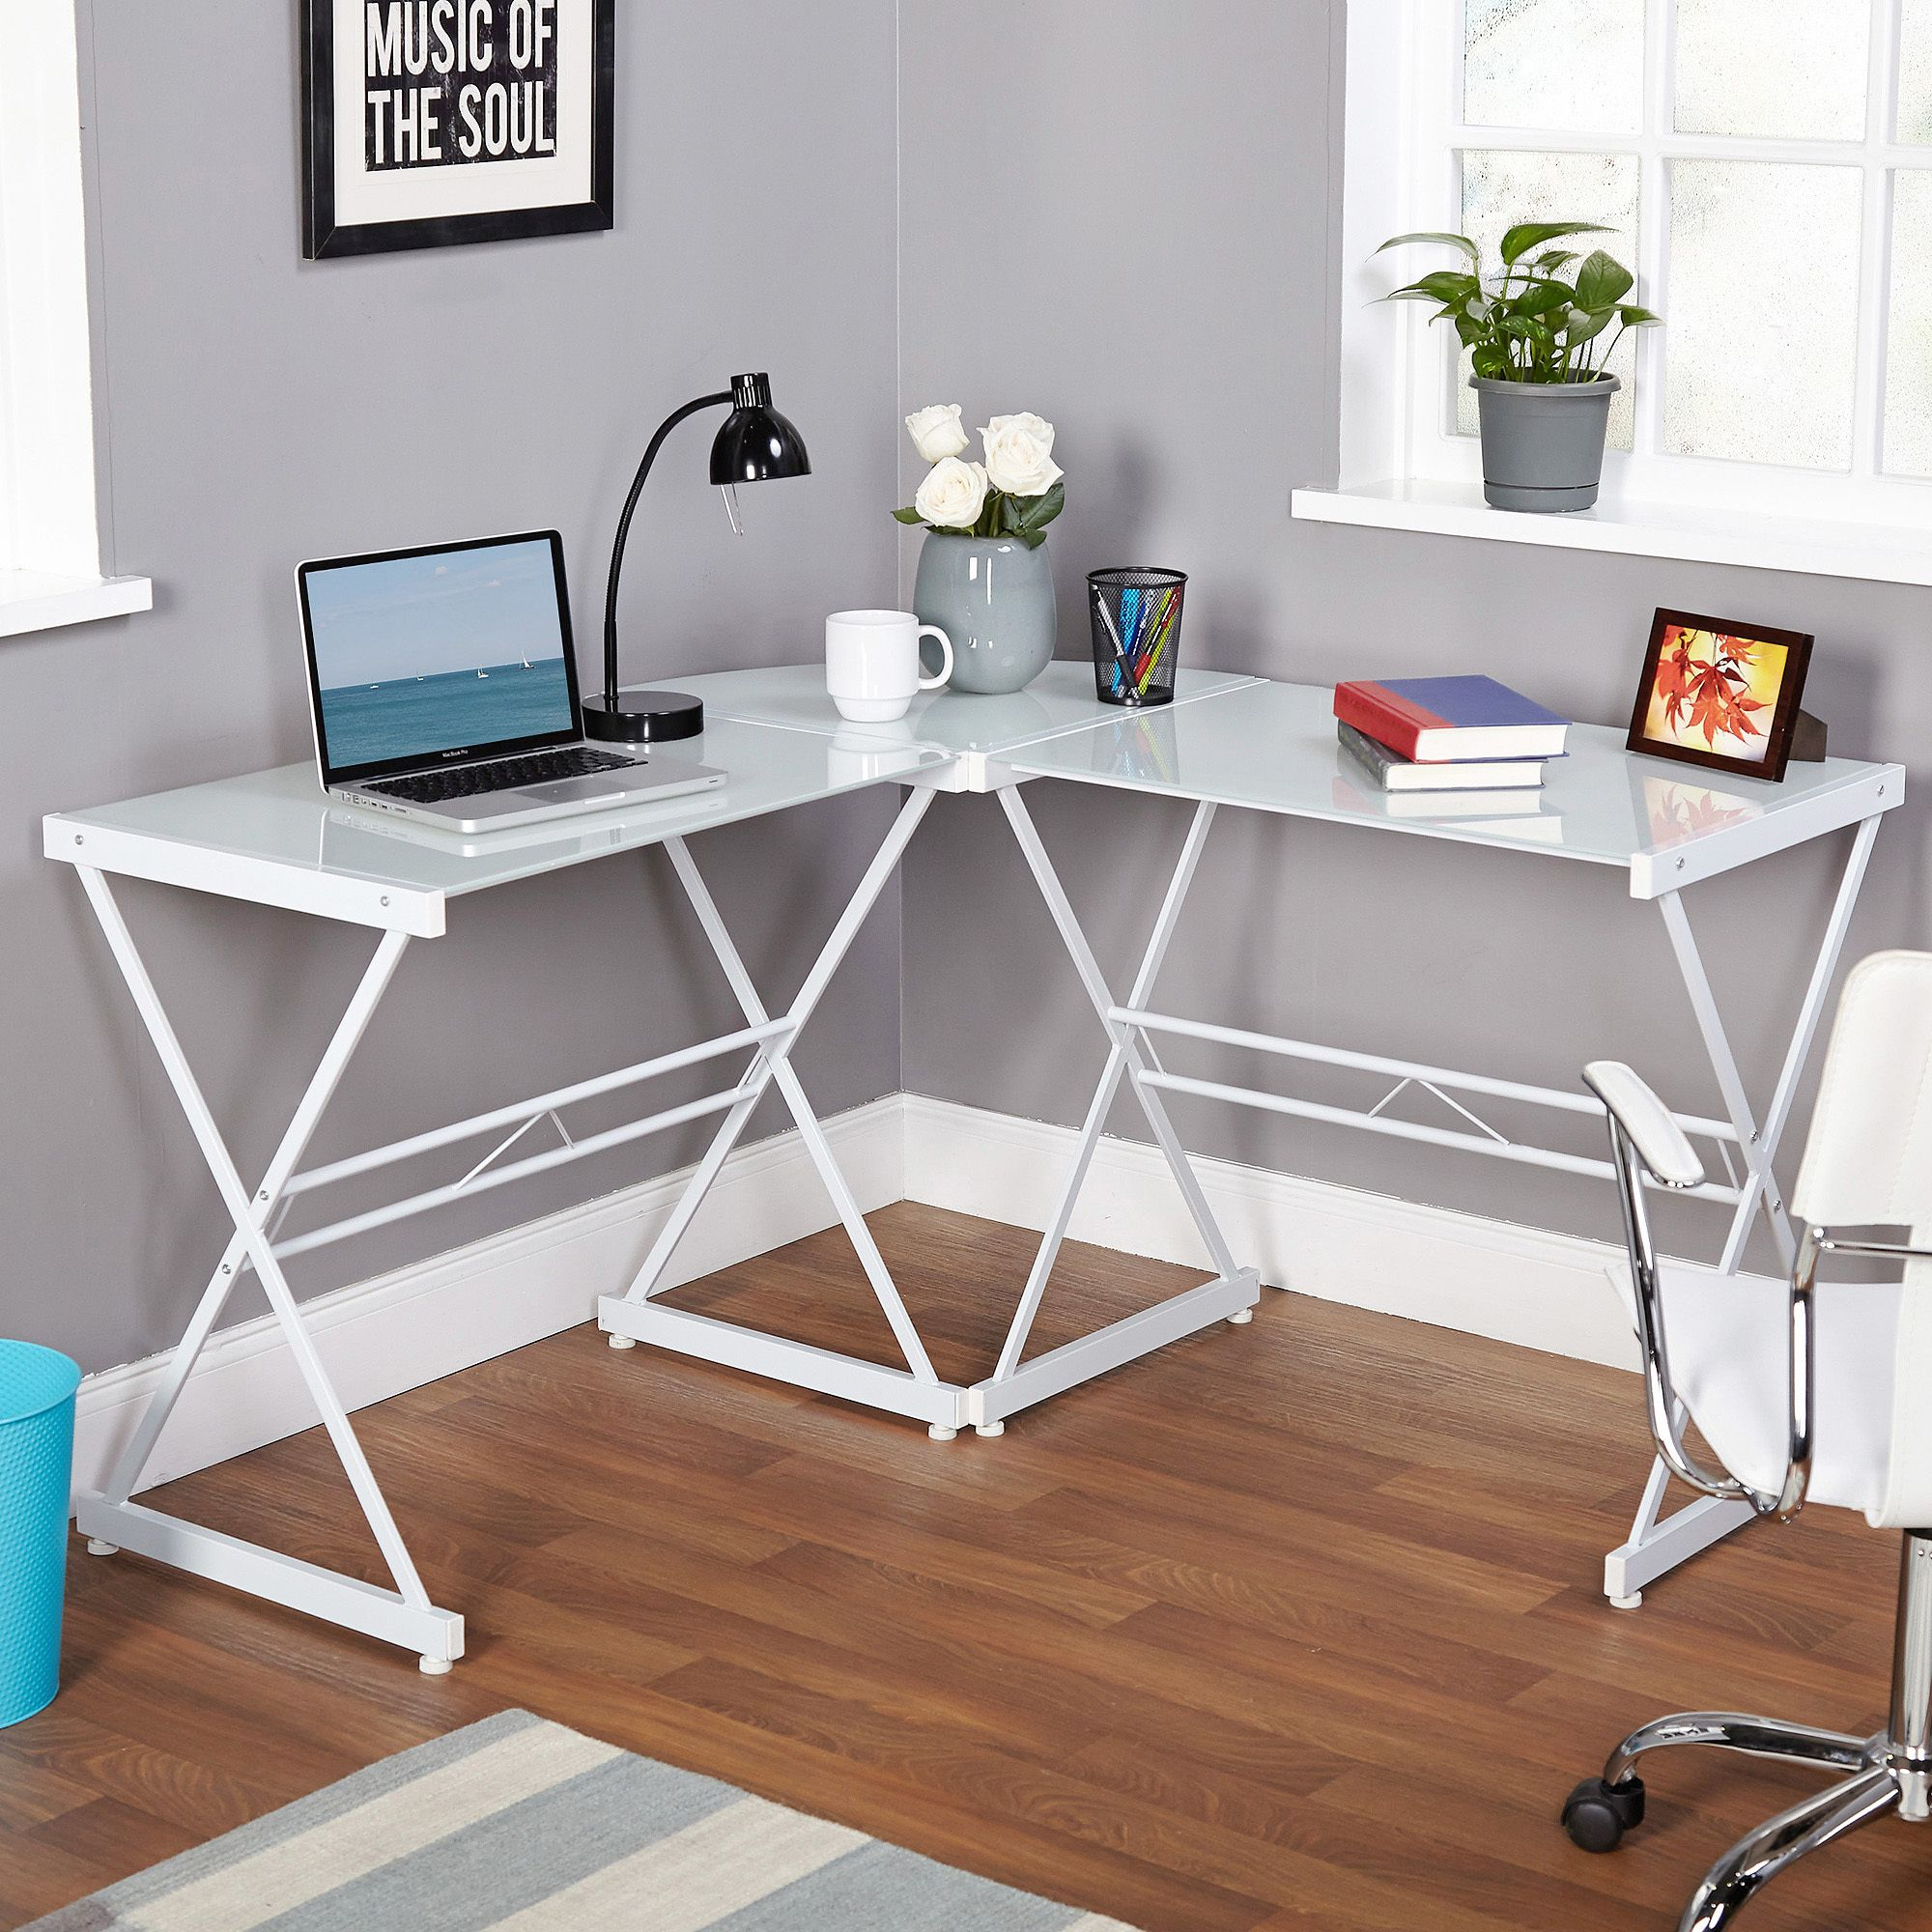 2019 Glass Top Student Desk Decoration Ideas For Desk Check More At Http Michael Mal Best Home Office Desk Home Office Furniture Desk Home Office Furniture